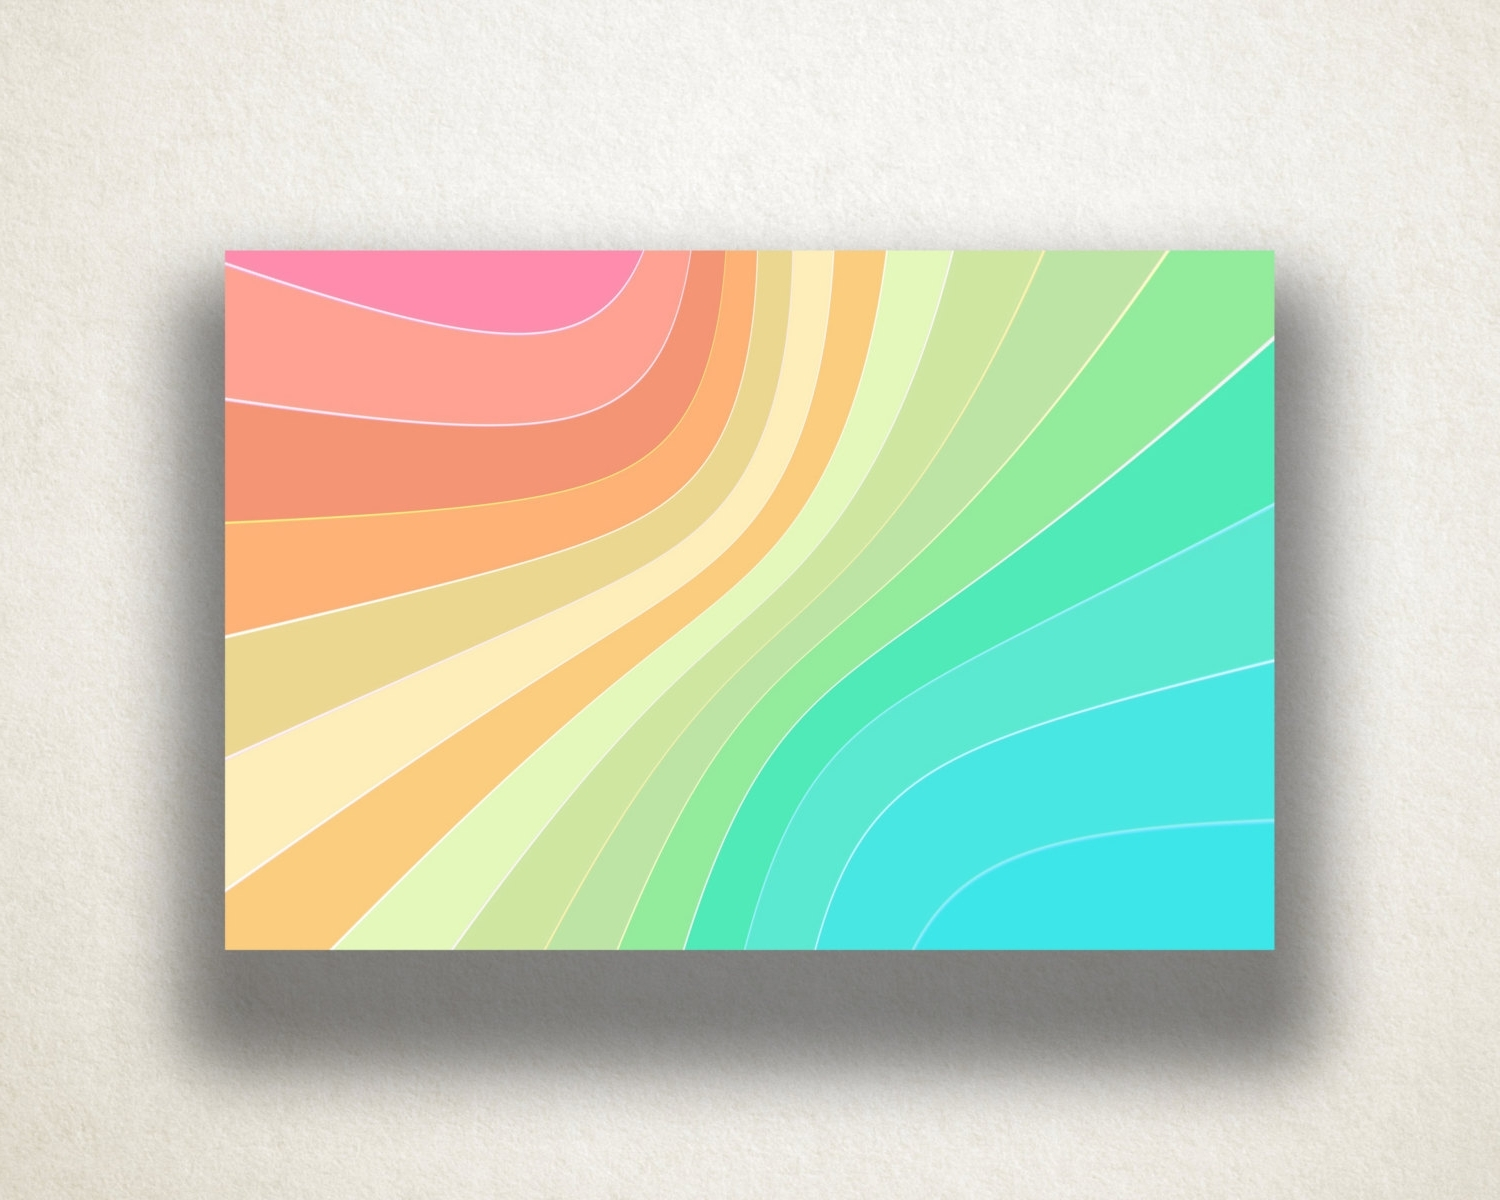 Pastel Abstract Wall Art Regarding Newest Abstract Rainbow Design Canvas Art Print, Gradient Pastel Wall Art (View 7 of 15)